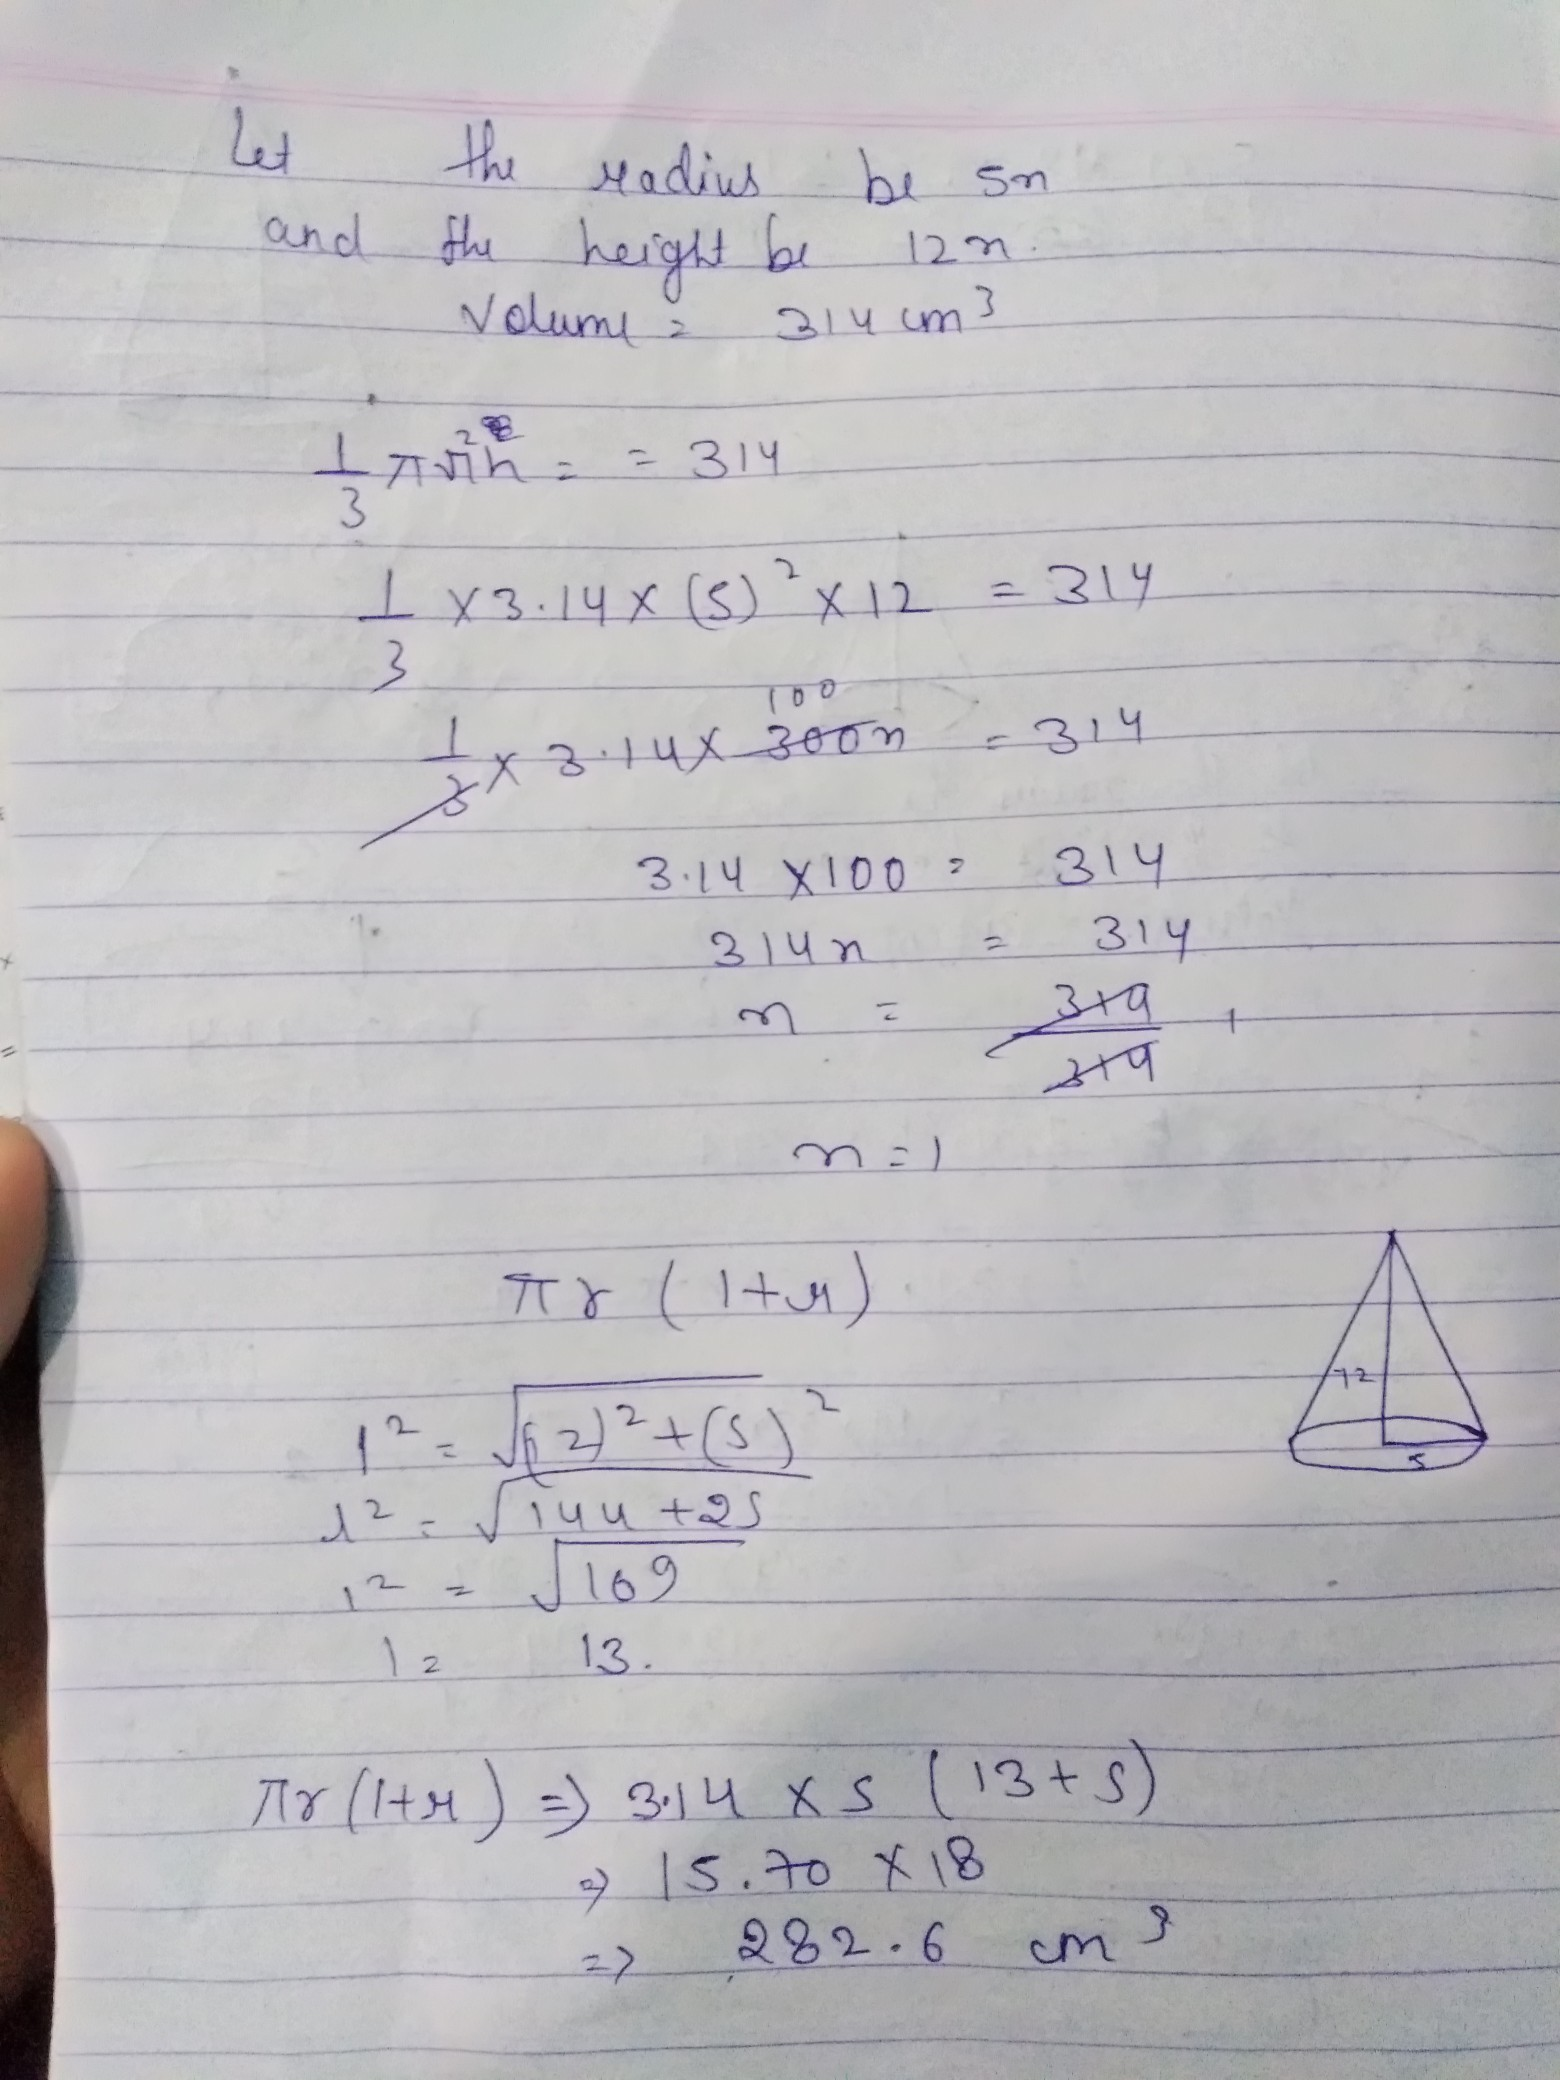 The Radius And Height Of A Solid Right Circular Cone Are